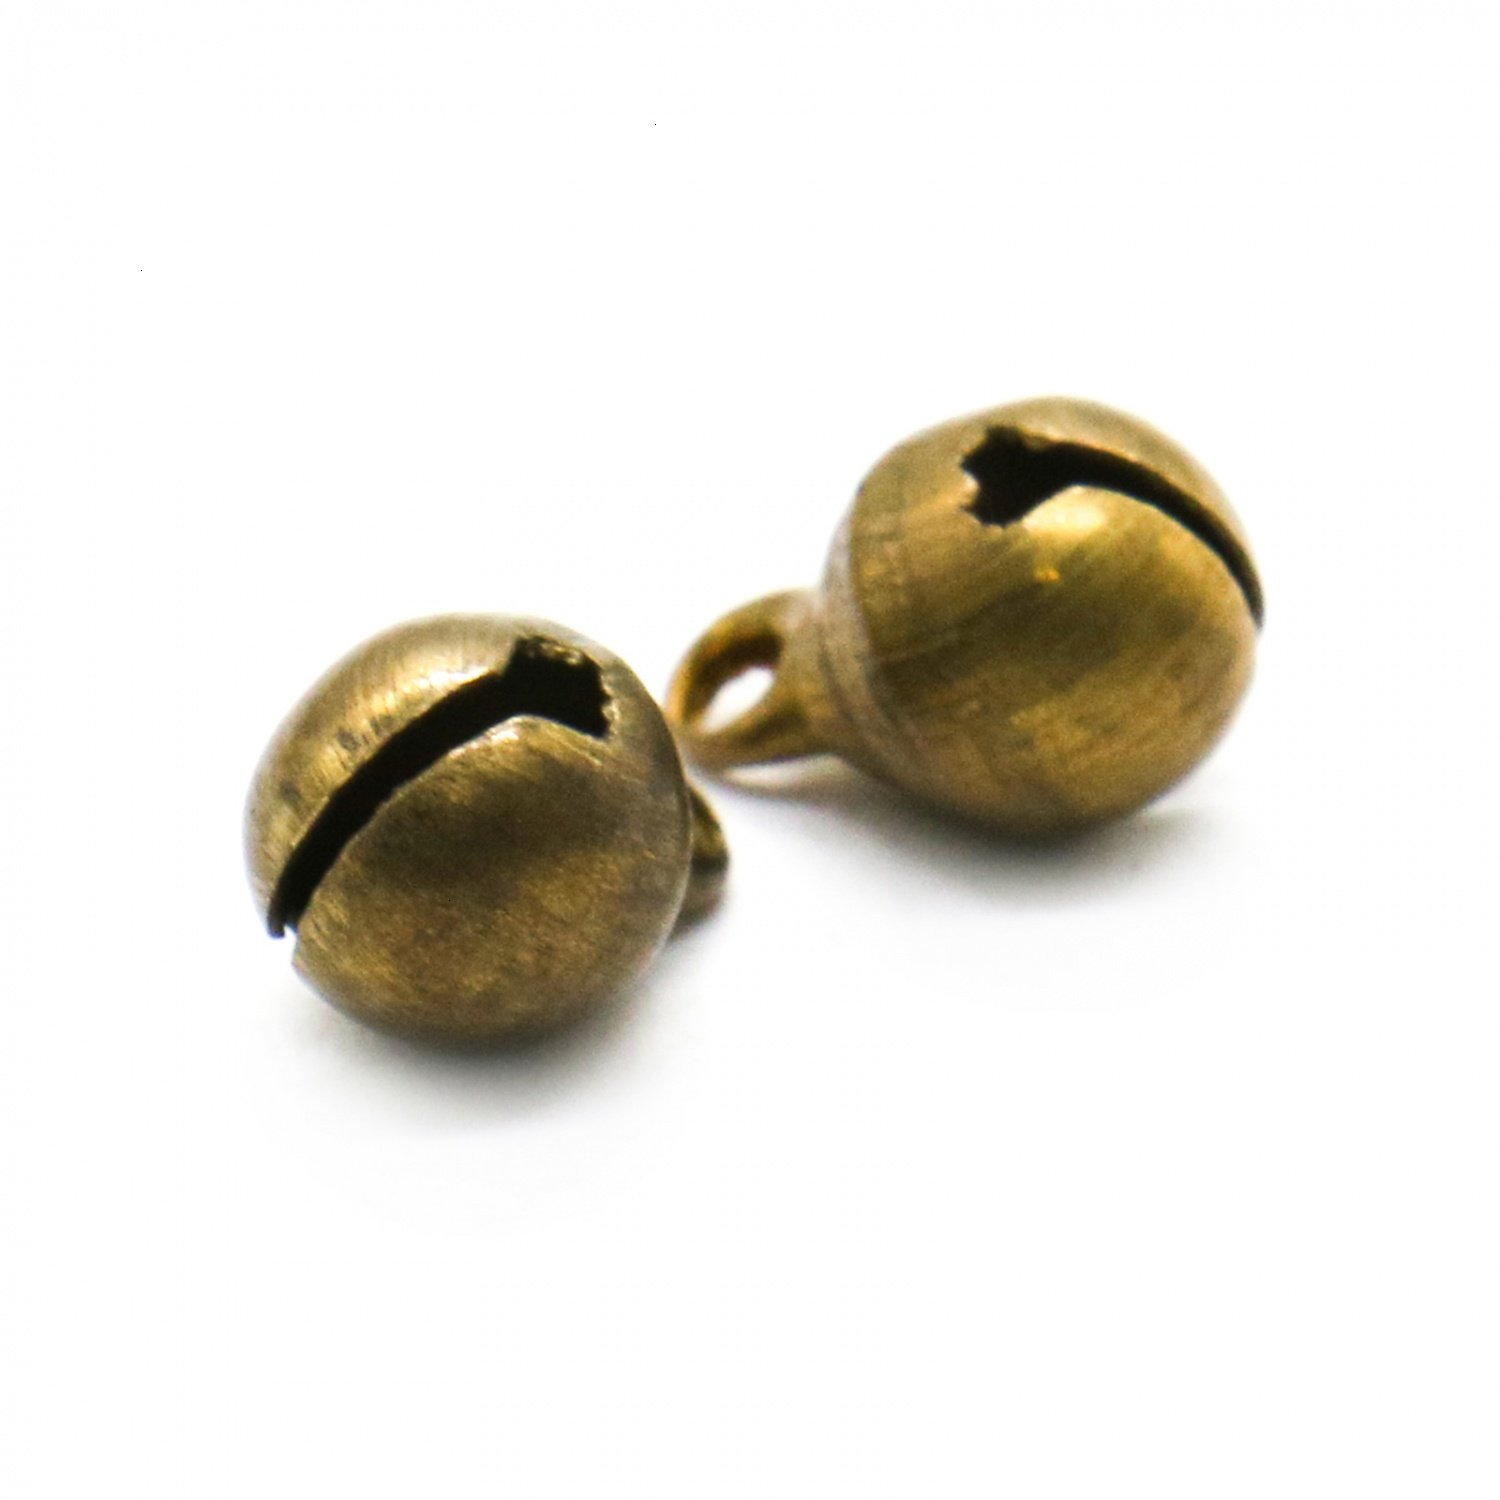 RTNOW 300pcs Fashion Bronze Jingle Bell/Small Bell/Mini Bell for DIY Bracelet Anklets Necklace Knitting/Jewelry Making